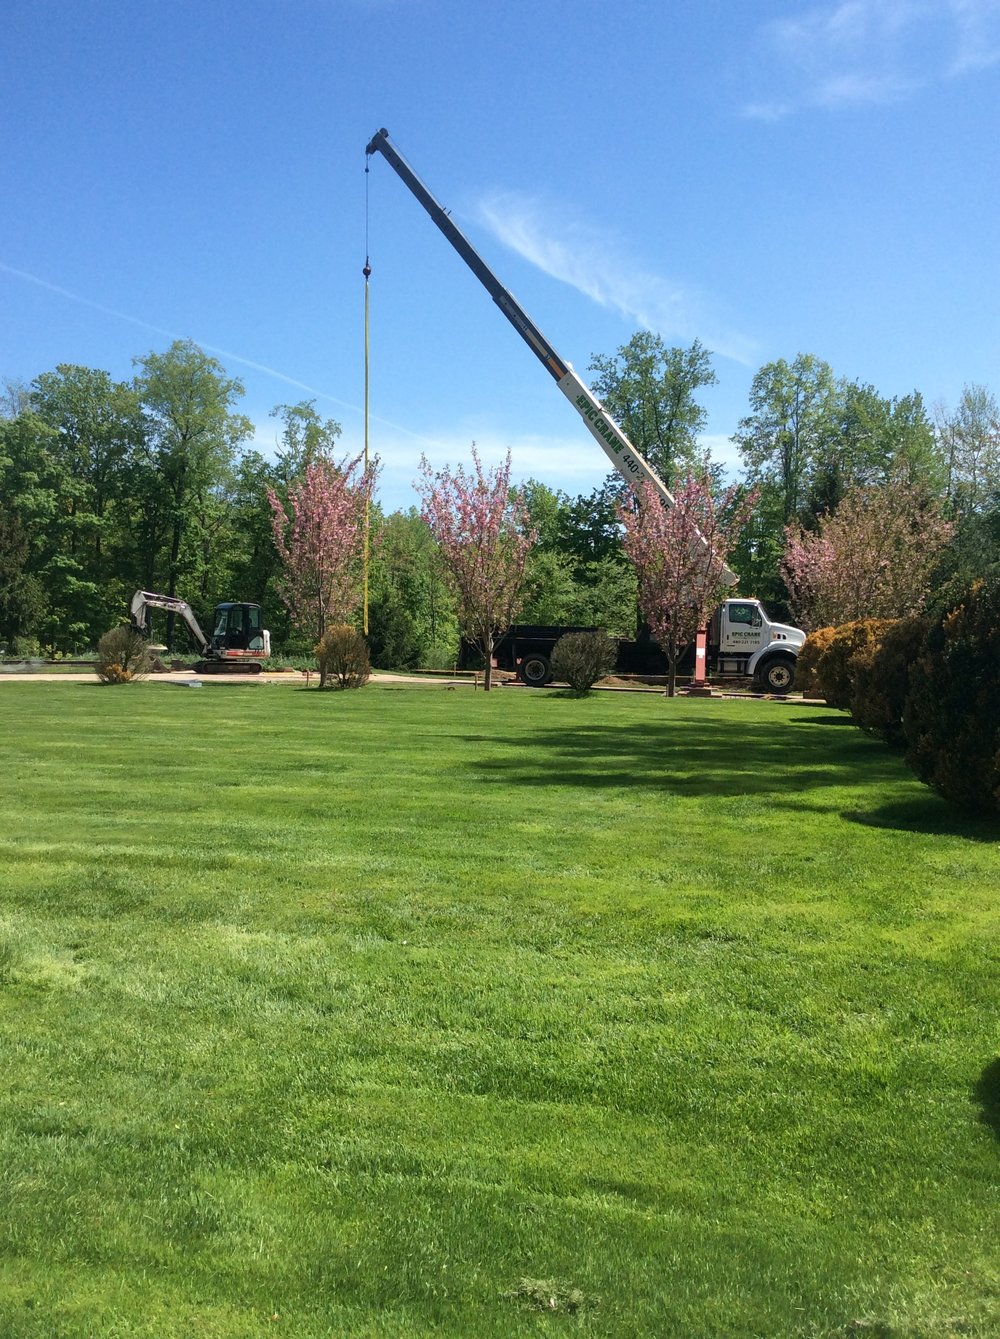 Top lawn care and snow removal in Pepper Pike, OH